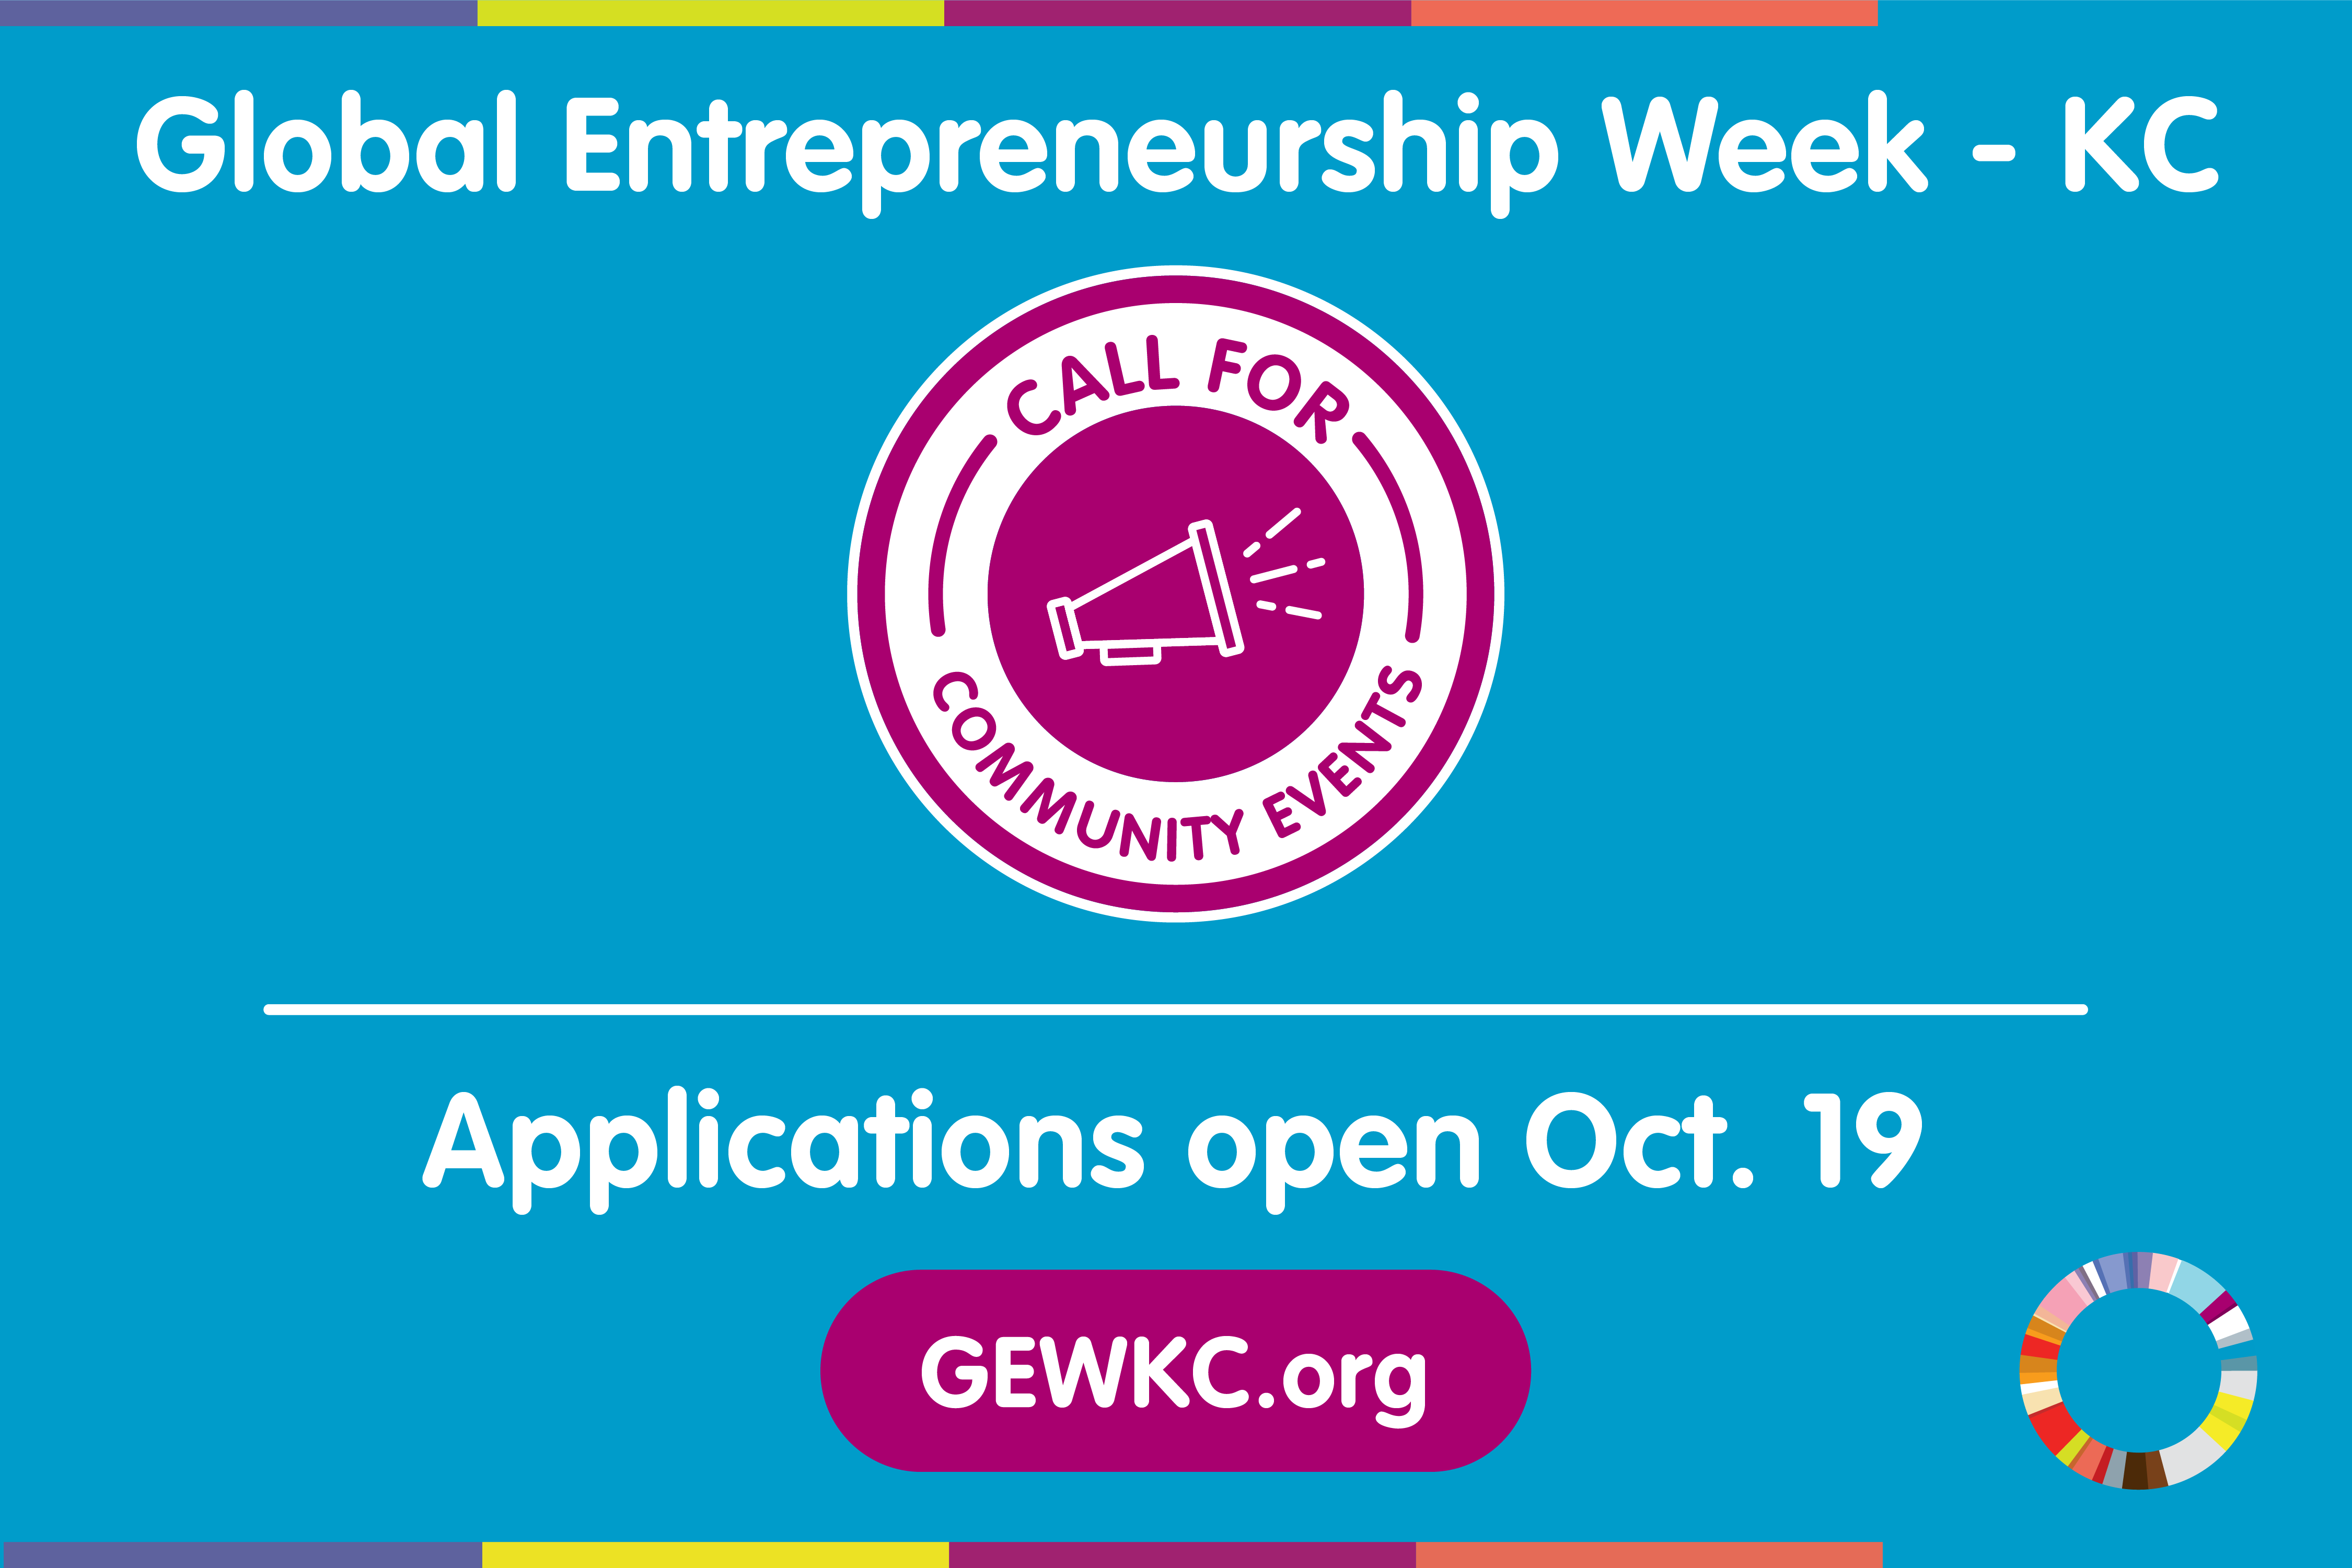 Submit a GEWKC Community Event